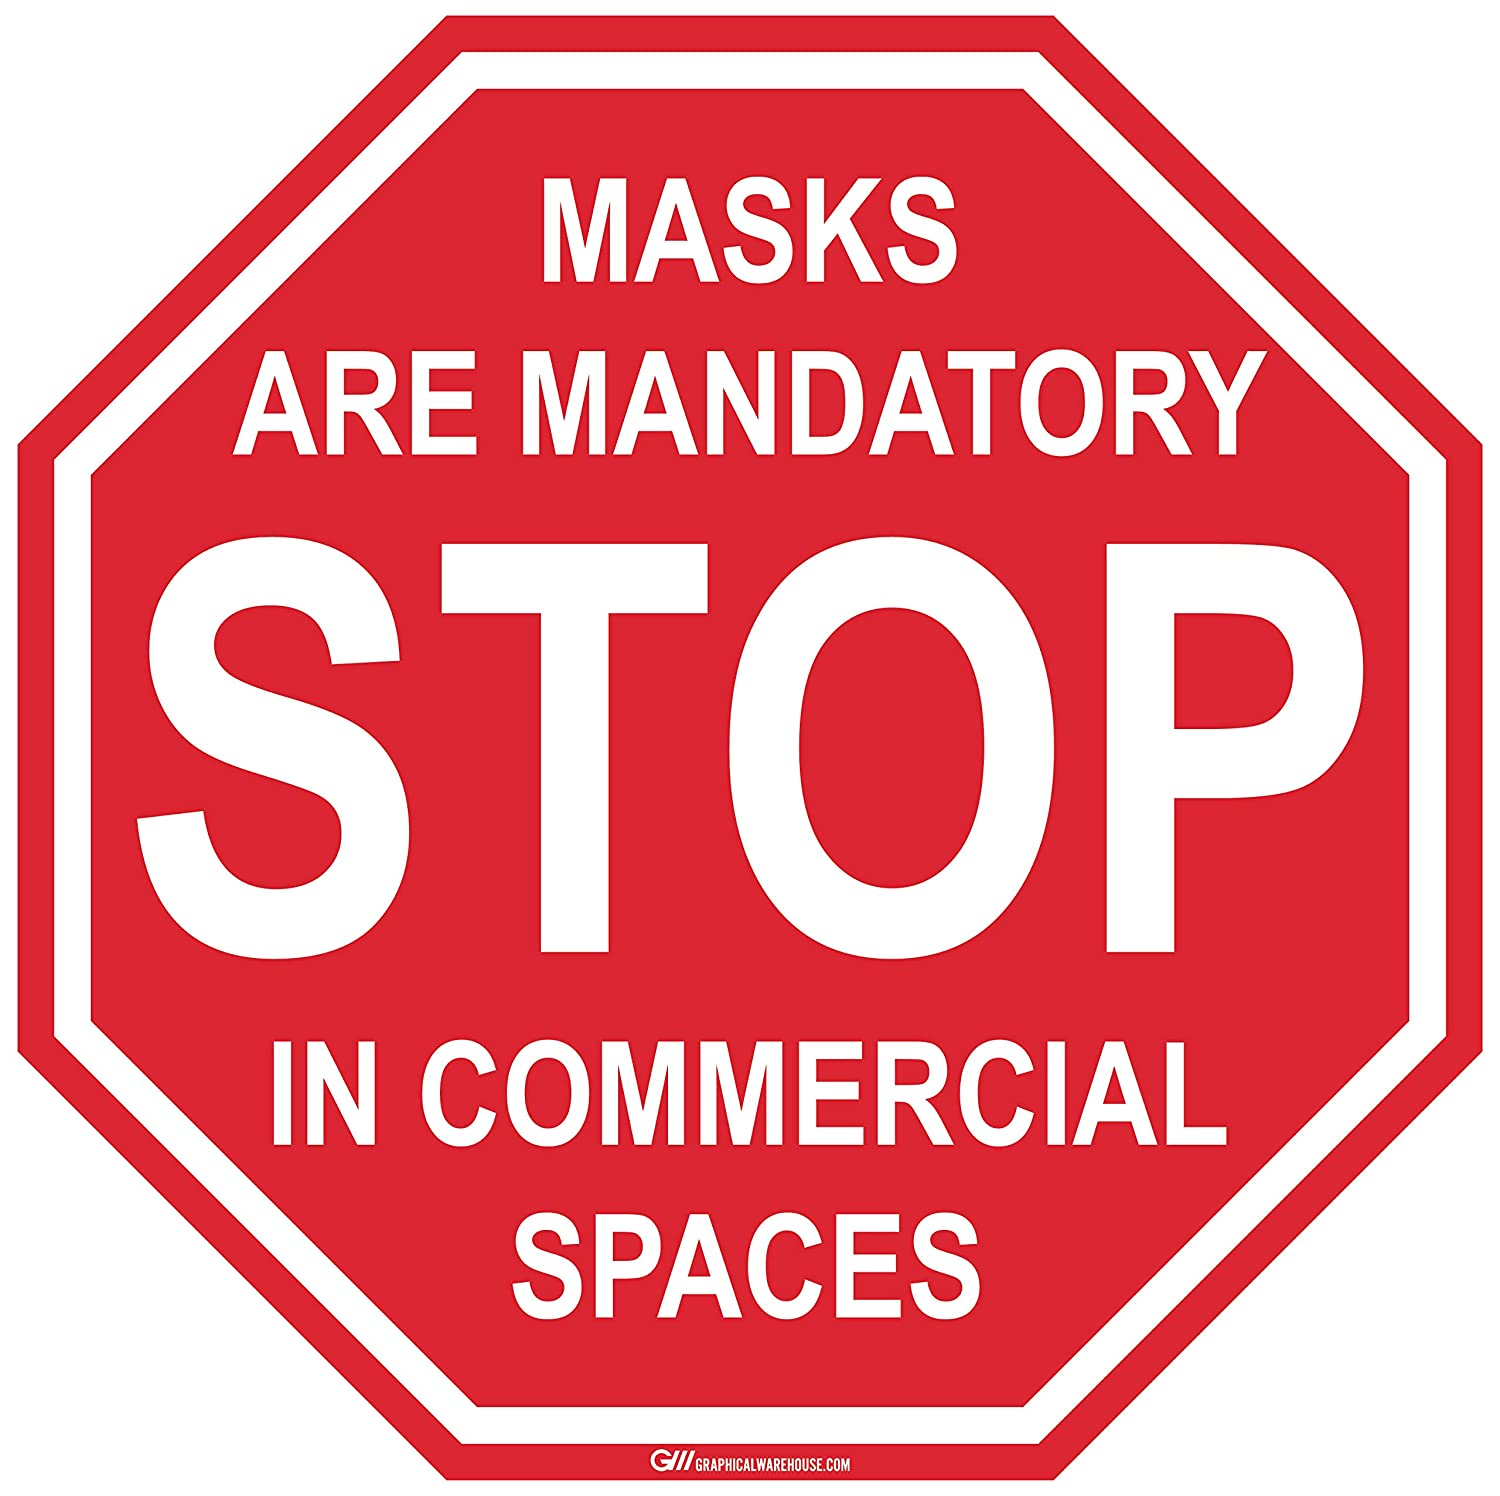 Stop Sign,Face Protection Mandatory in Commercial Spaces Adhesive Durable Vinyl Decal- (Various Sizes Available) Sign by Graphical Warehouse- Safety and Security Signage (14x14)